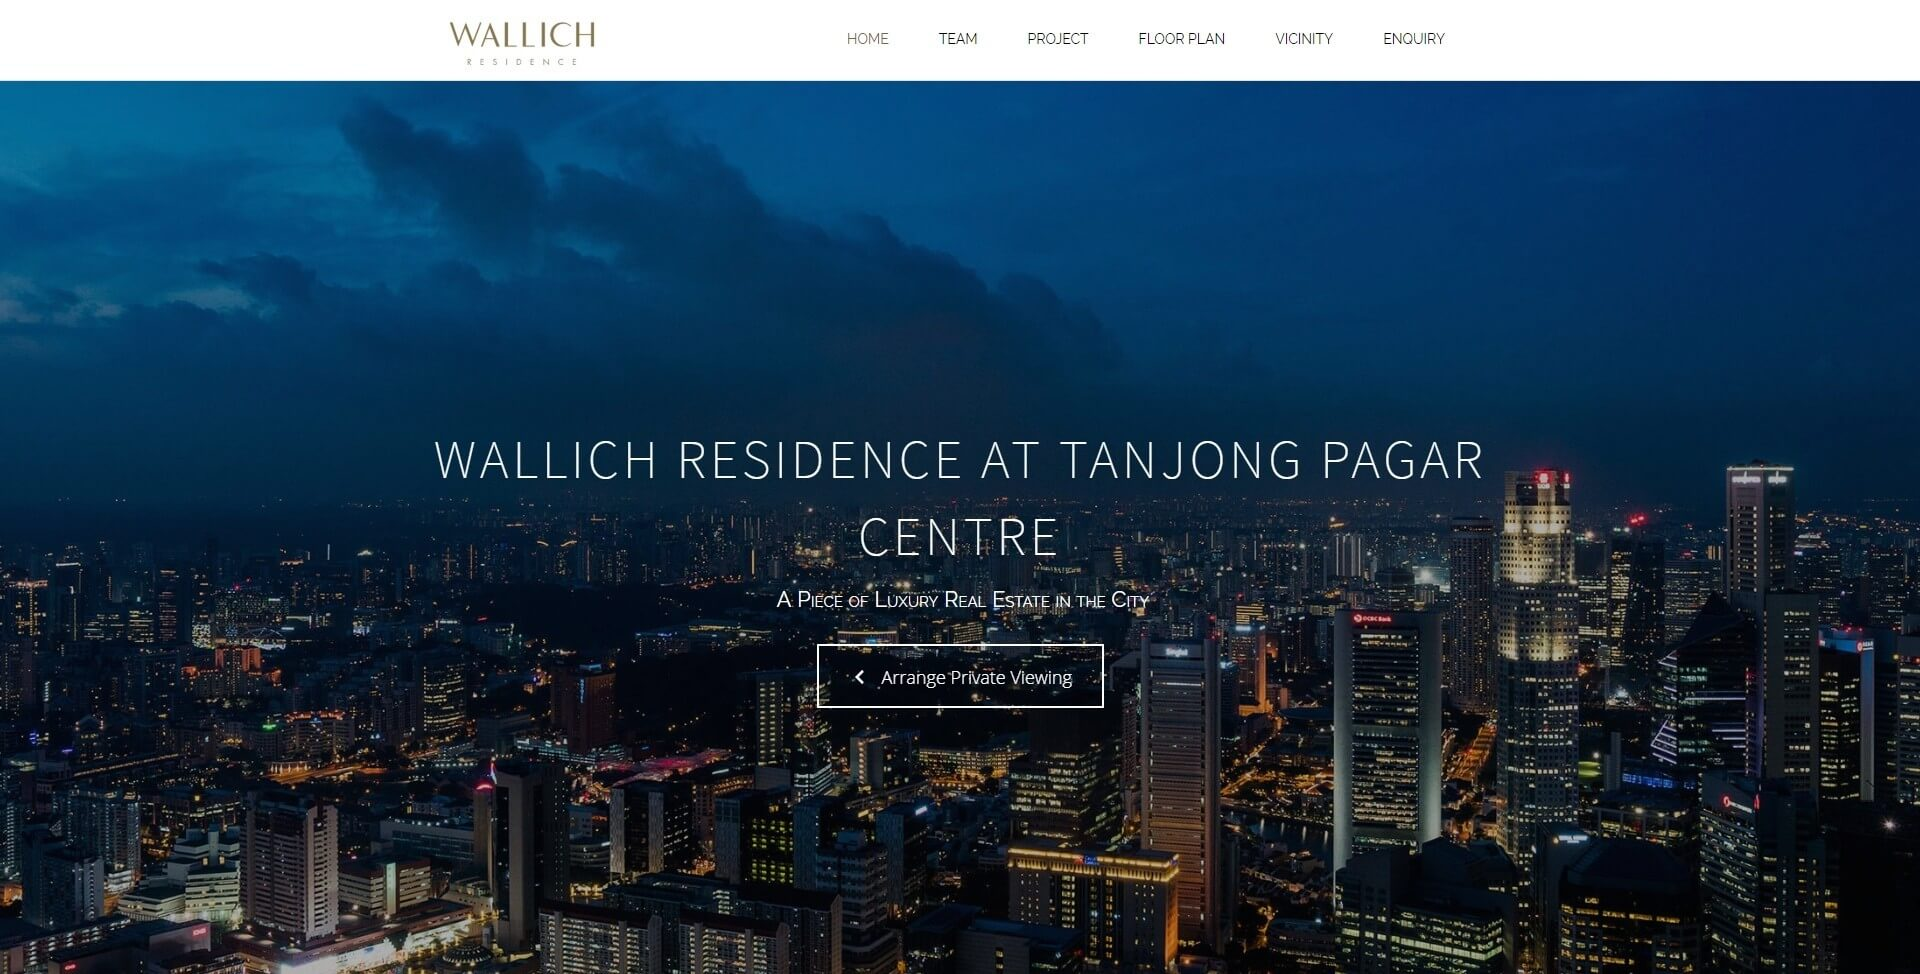 Wallich Residence - Home Page - Above the Fold